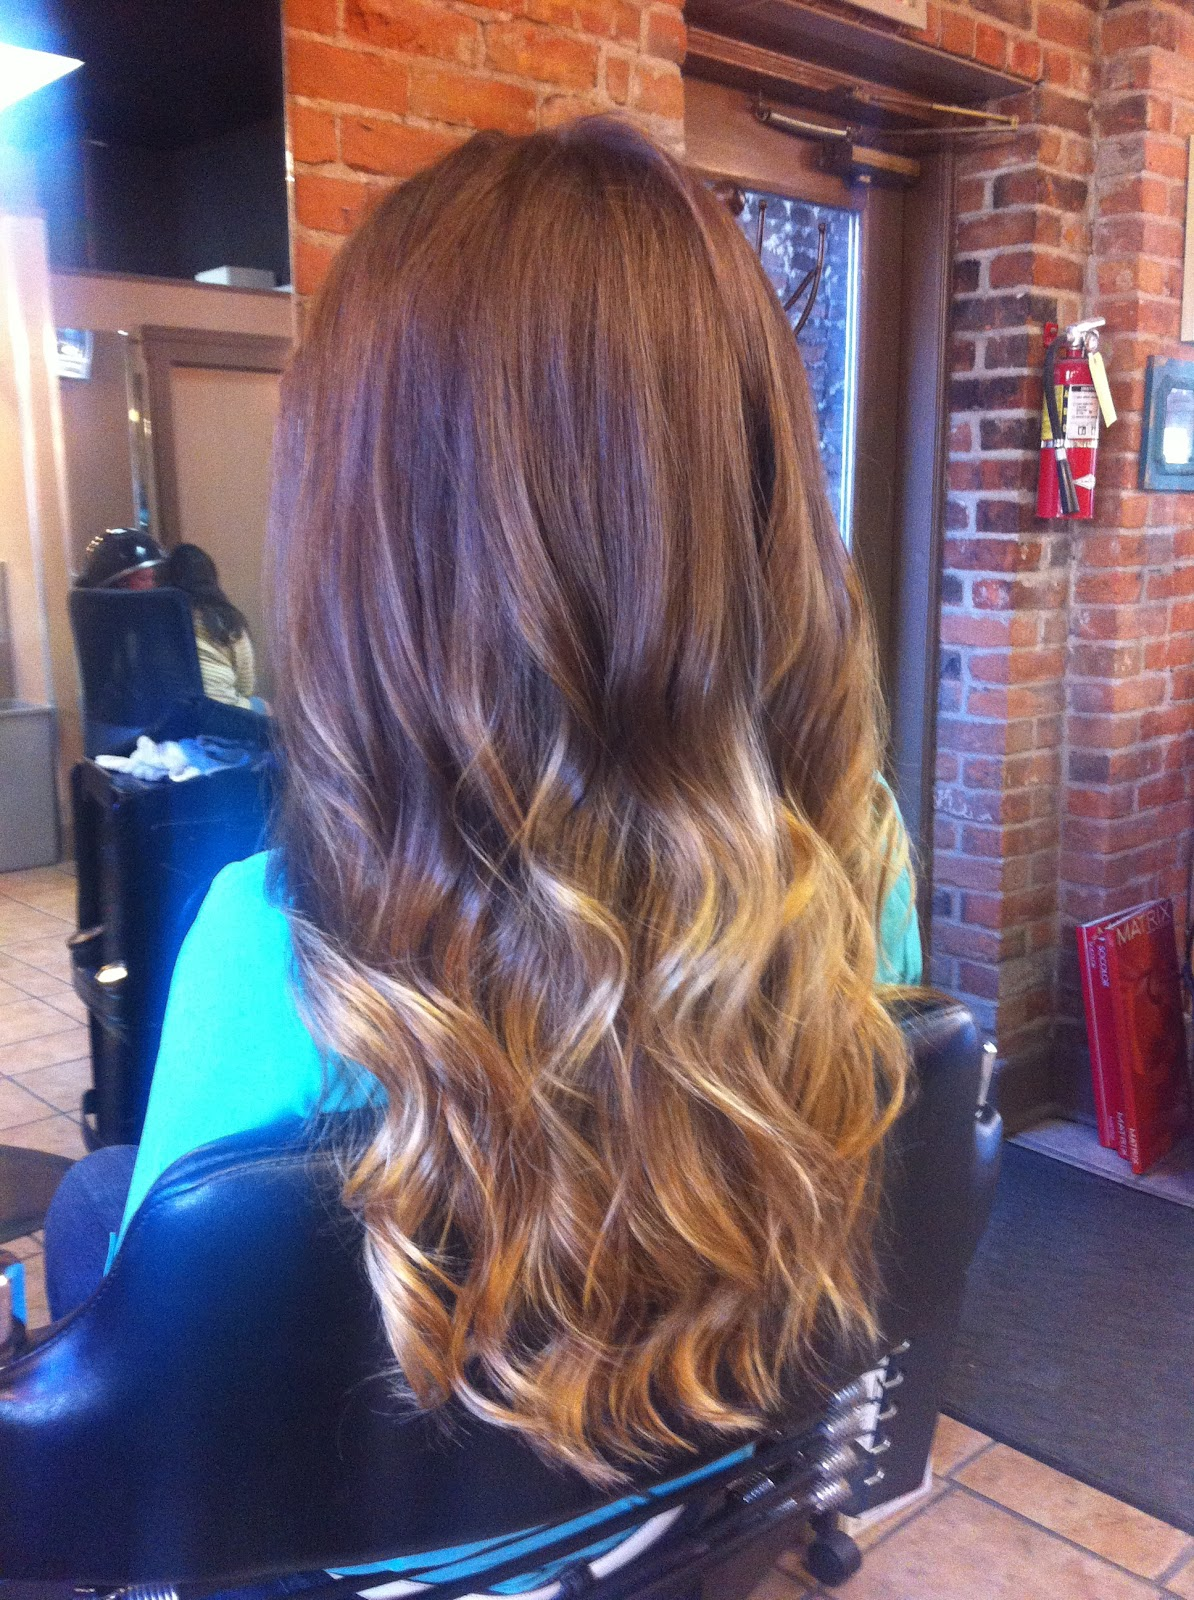 Alex Crabtree Hair Make Up Blog Hair Color Trends Ombre